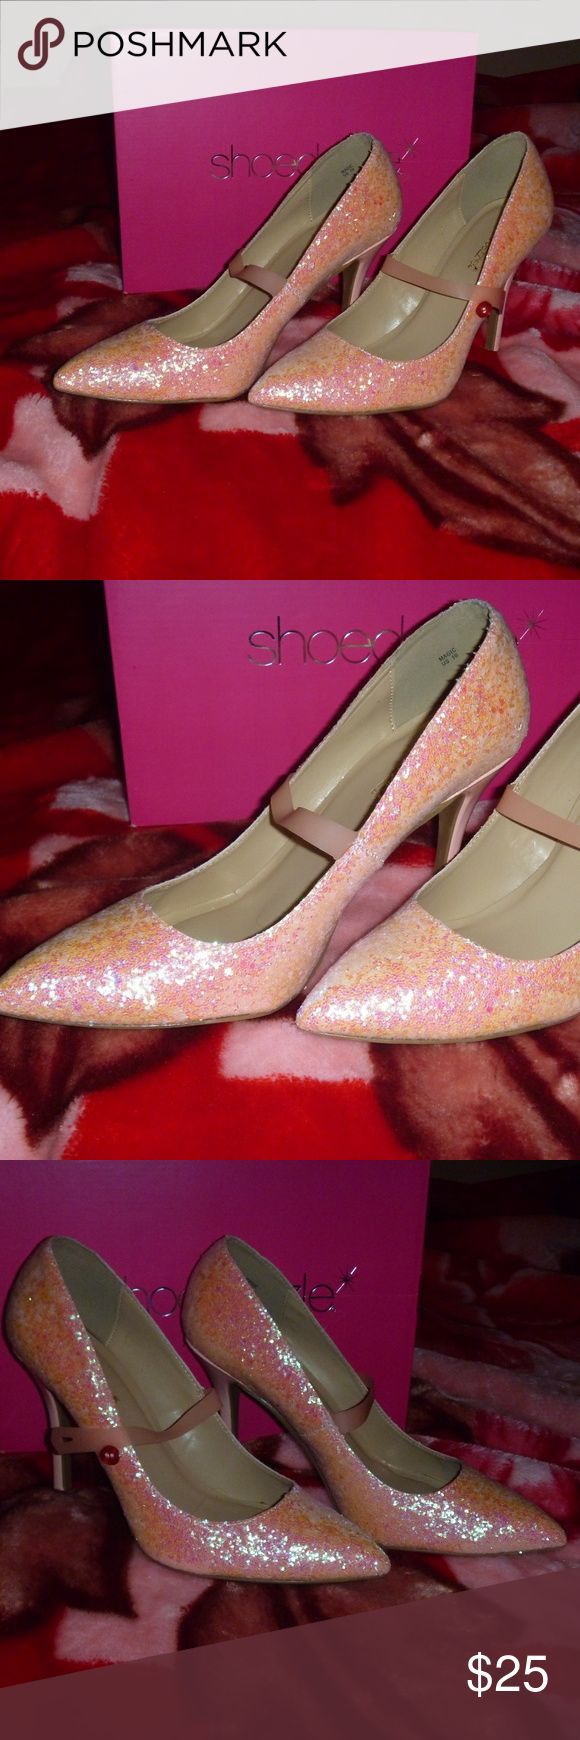 "Shoe Dazzle Pink Glitter Heels Size 10 Welcome! This magnificent pair of heels by Shoe Dazzle is sure to turn heads. Barely used, these 4"" heels shine and sparkle in nearly any ambiance. Easily my favorite pair of heels, but I must part with them at this time. Come fully packed within original box, size 10. Shoe Dazzle Shoes Heels"